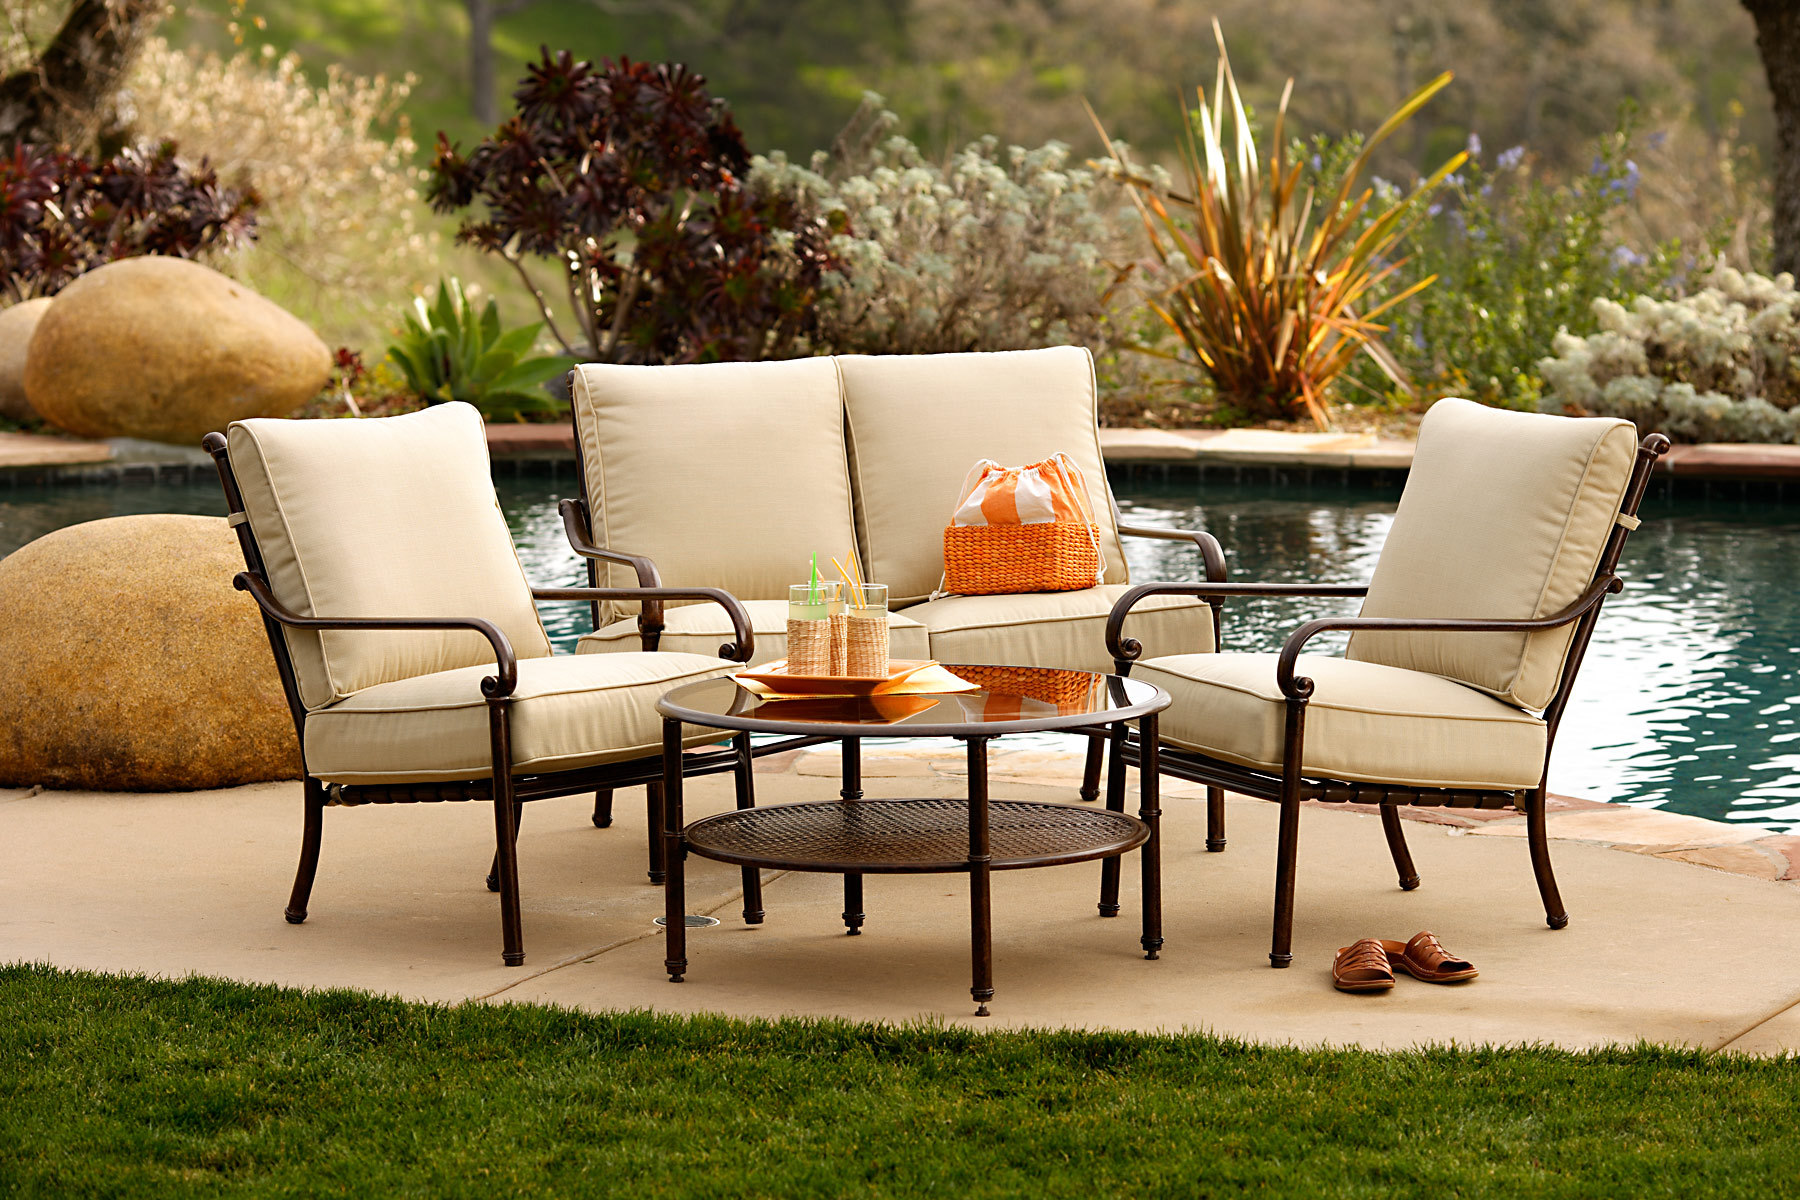 Small patio furniture eva furniture for Outdoor garden furniture